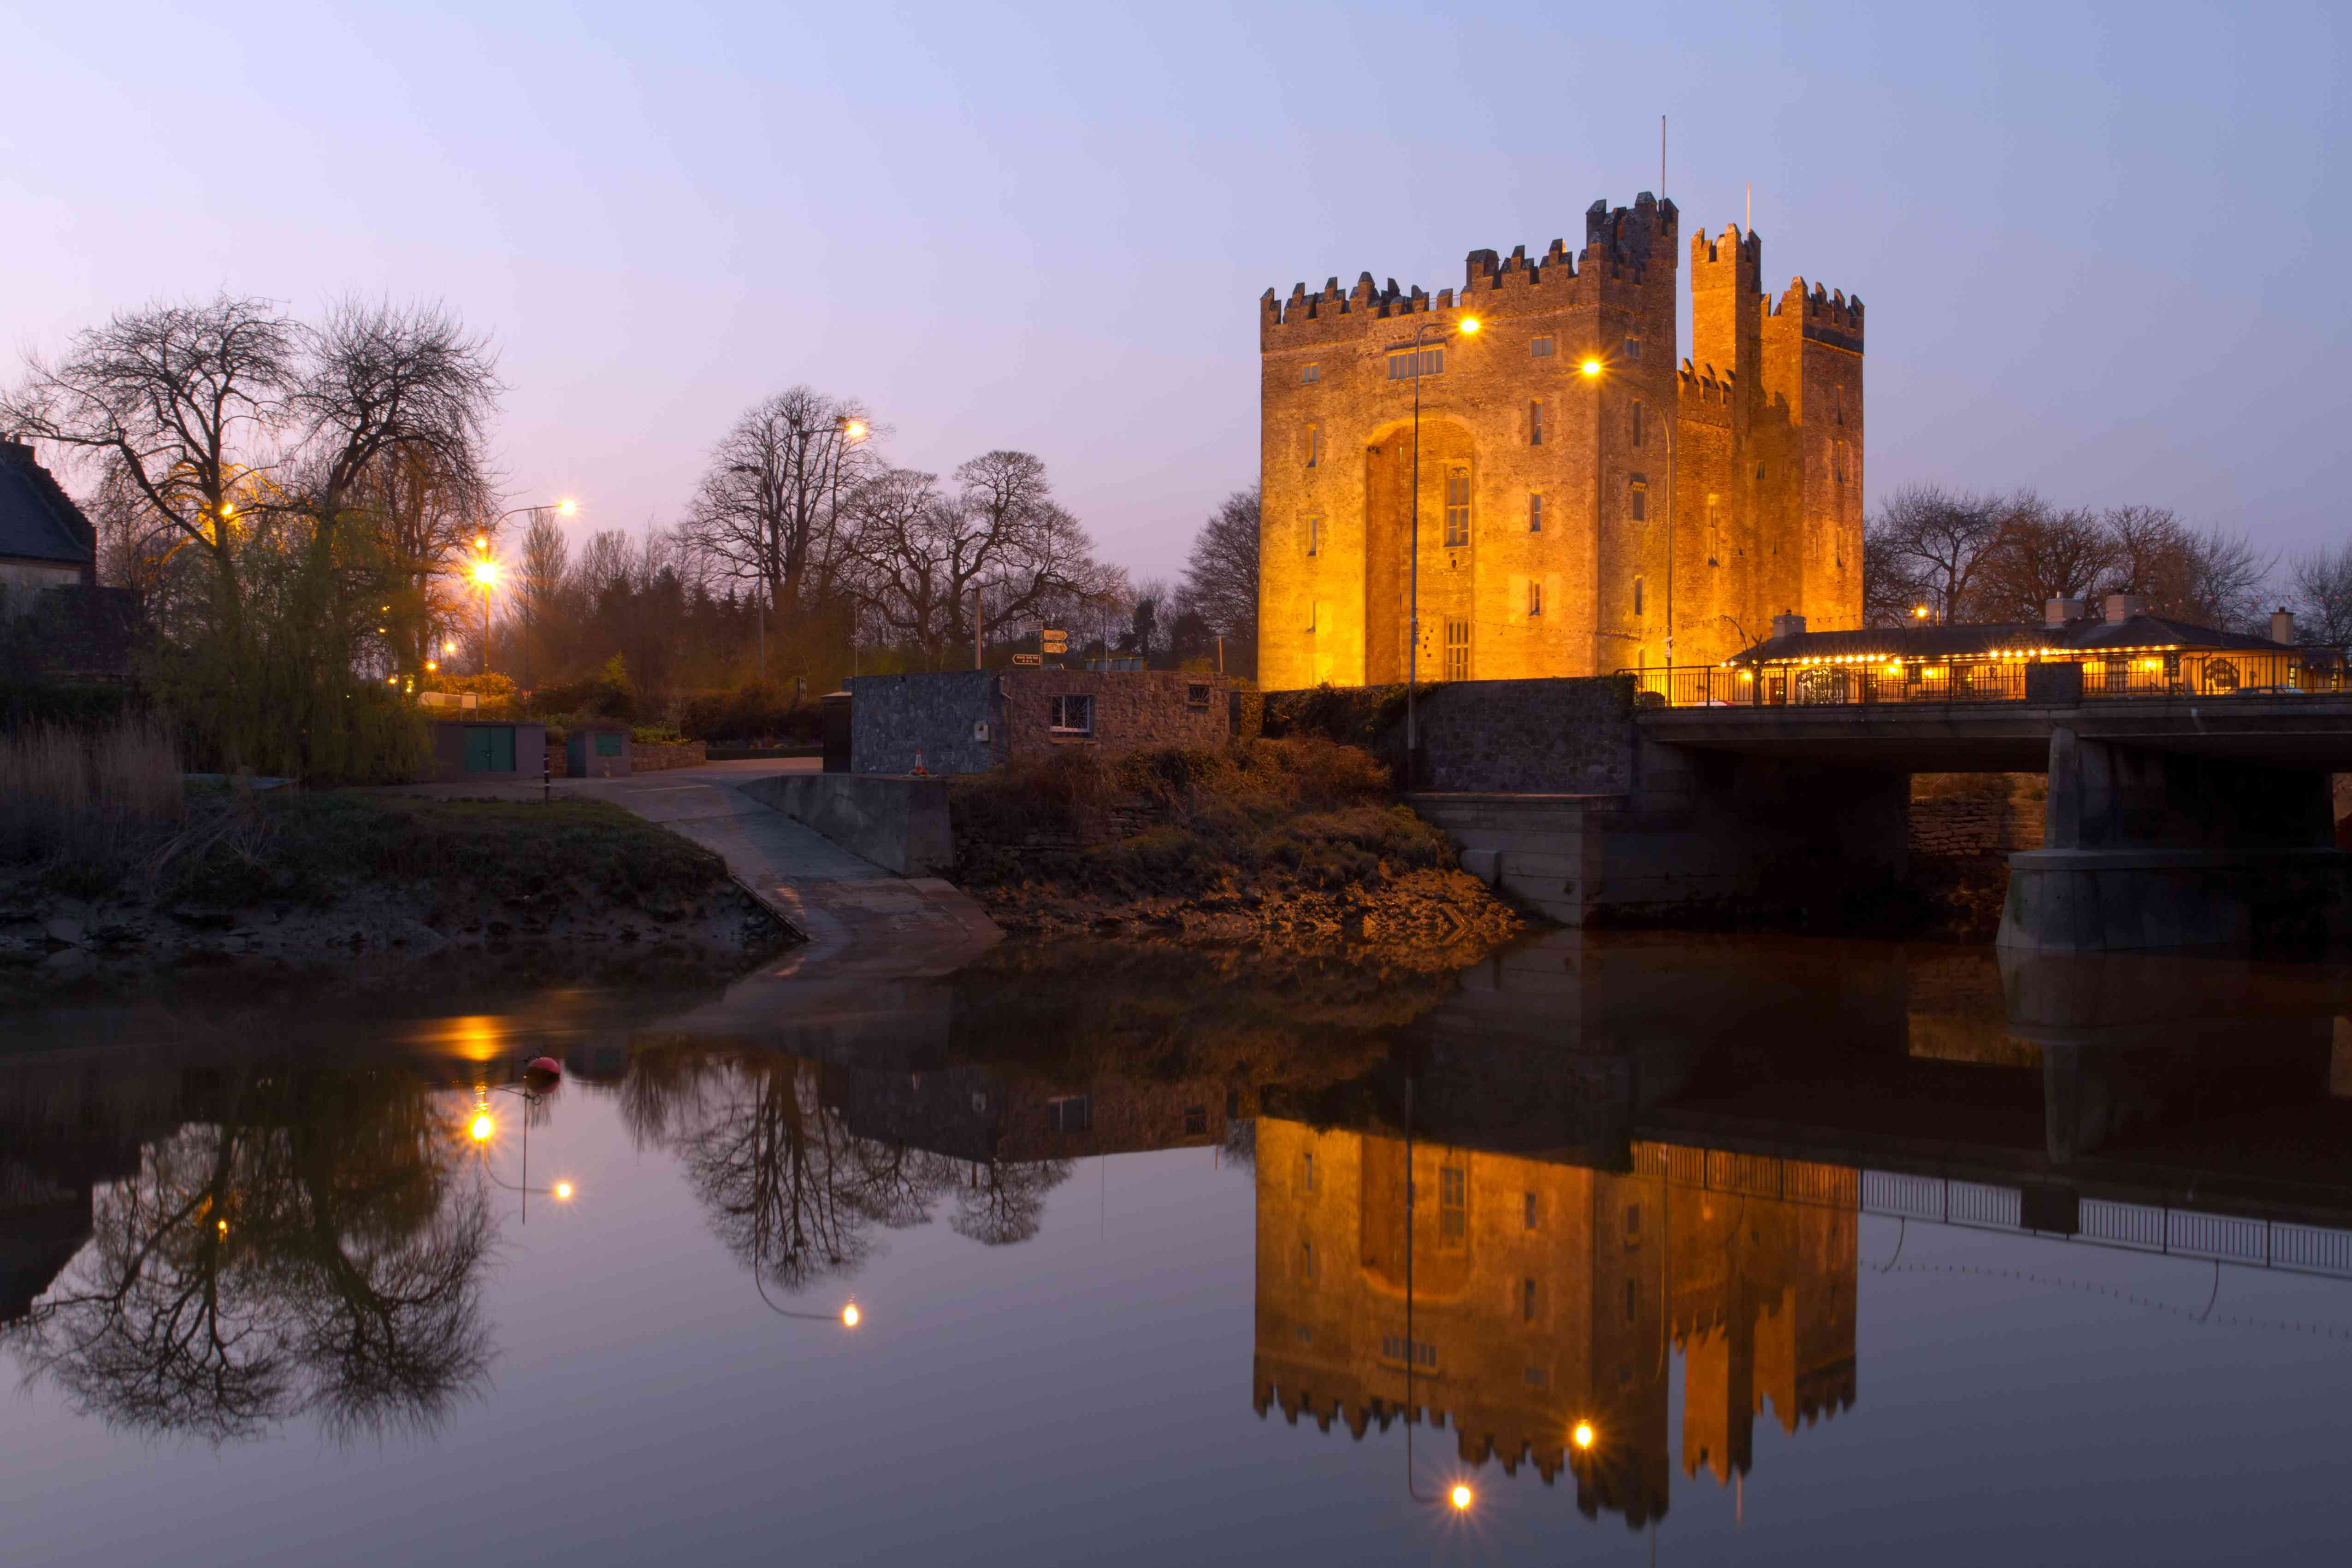 Bunratty castle at dusk